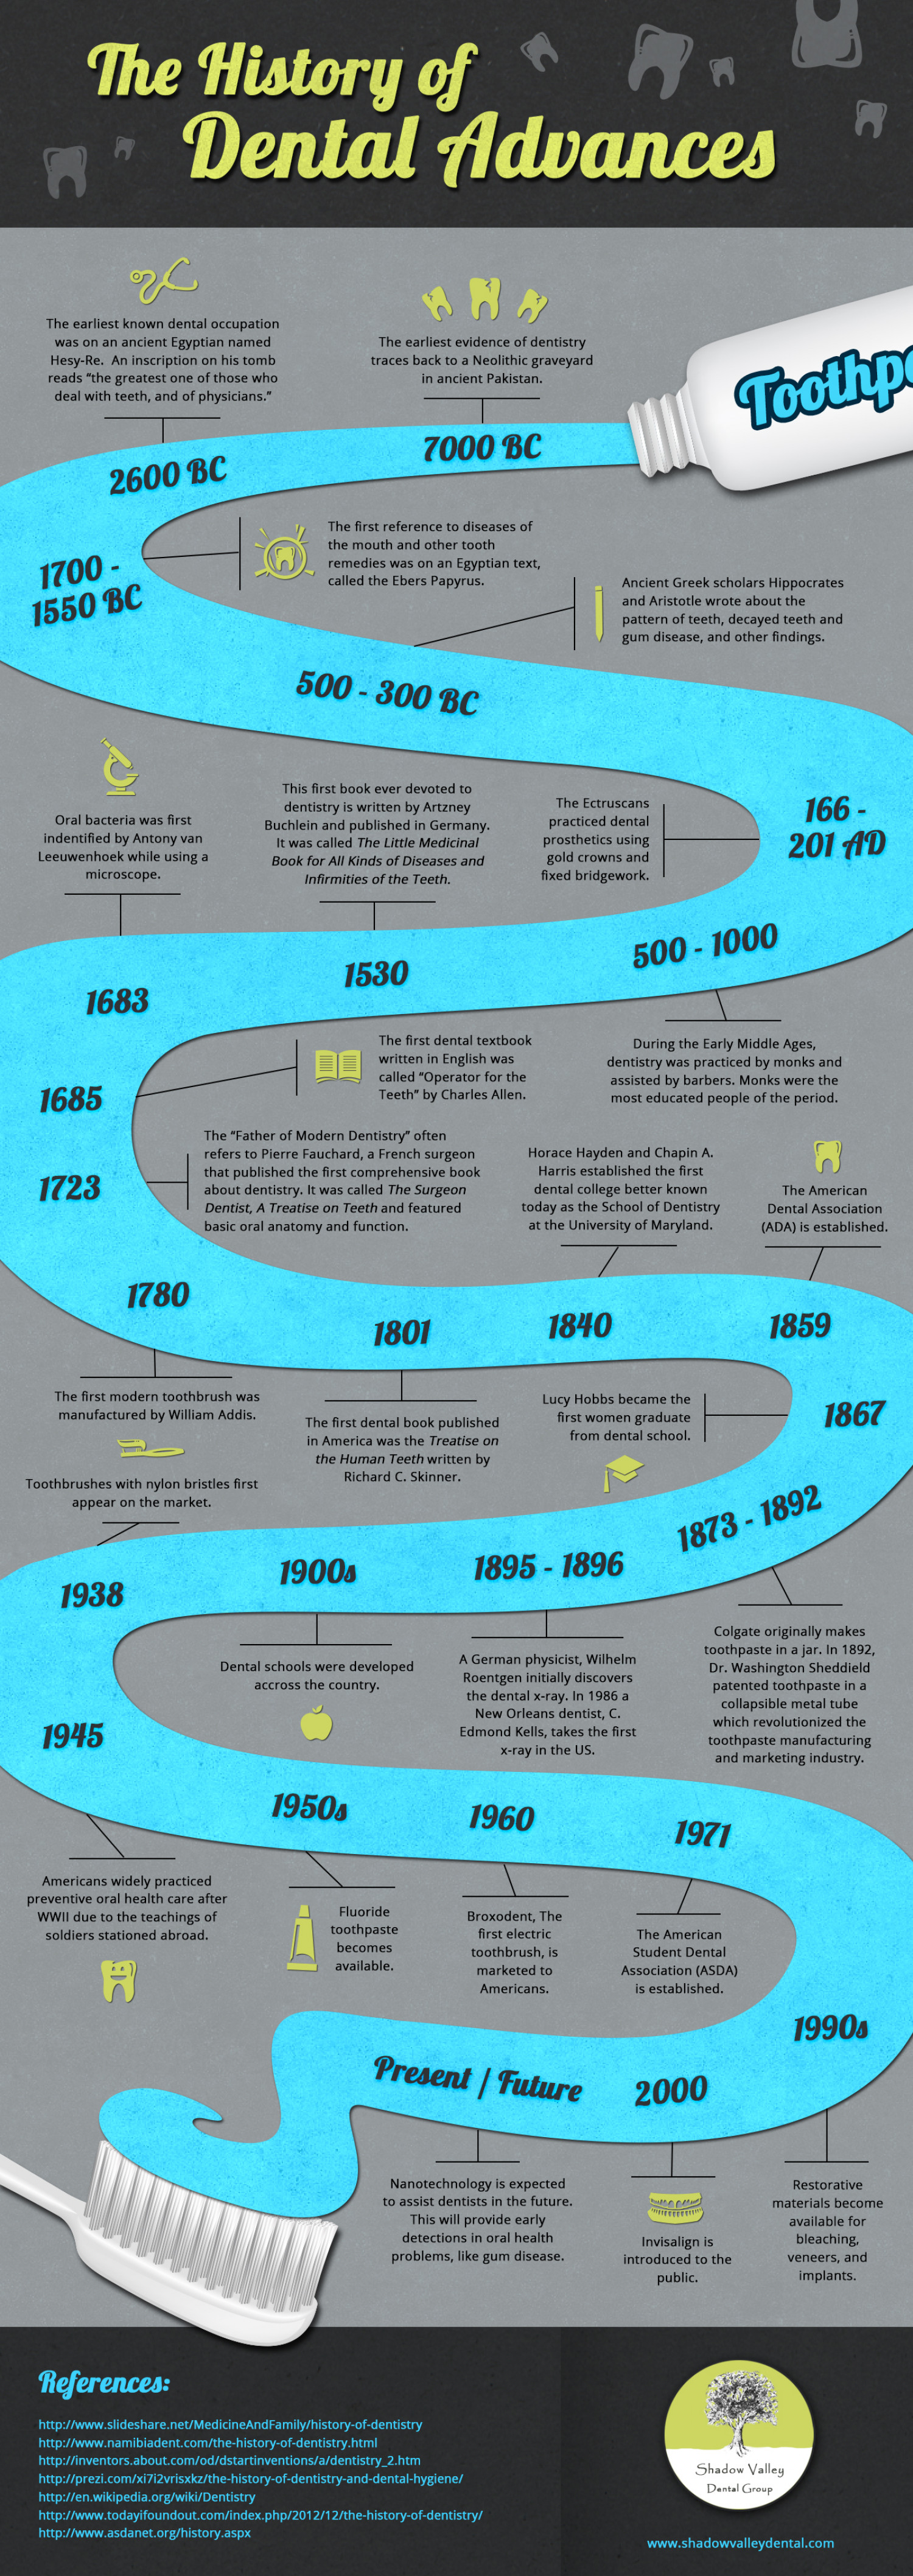 The History of Dental Advances Infographic